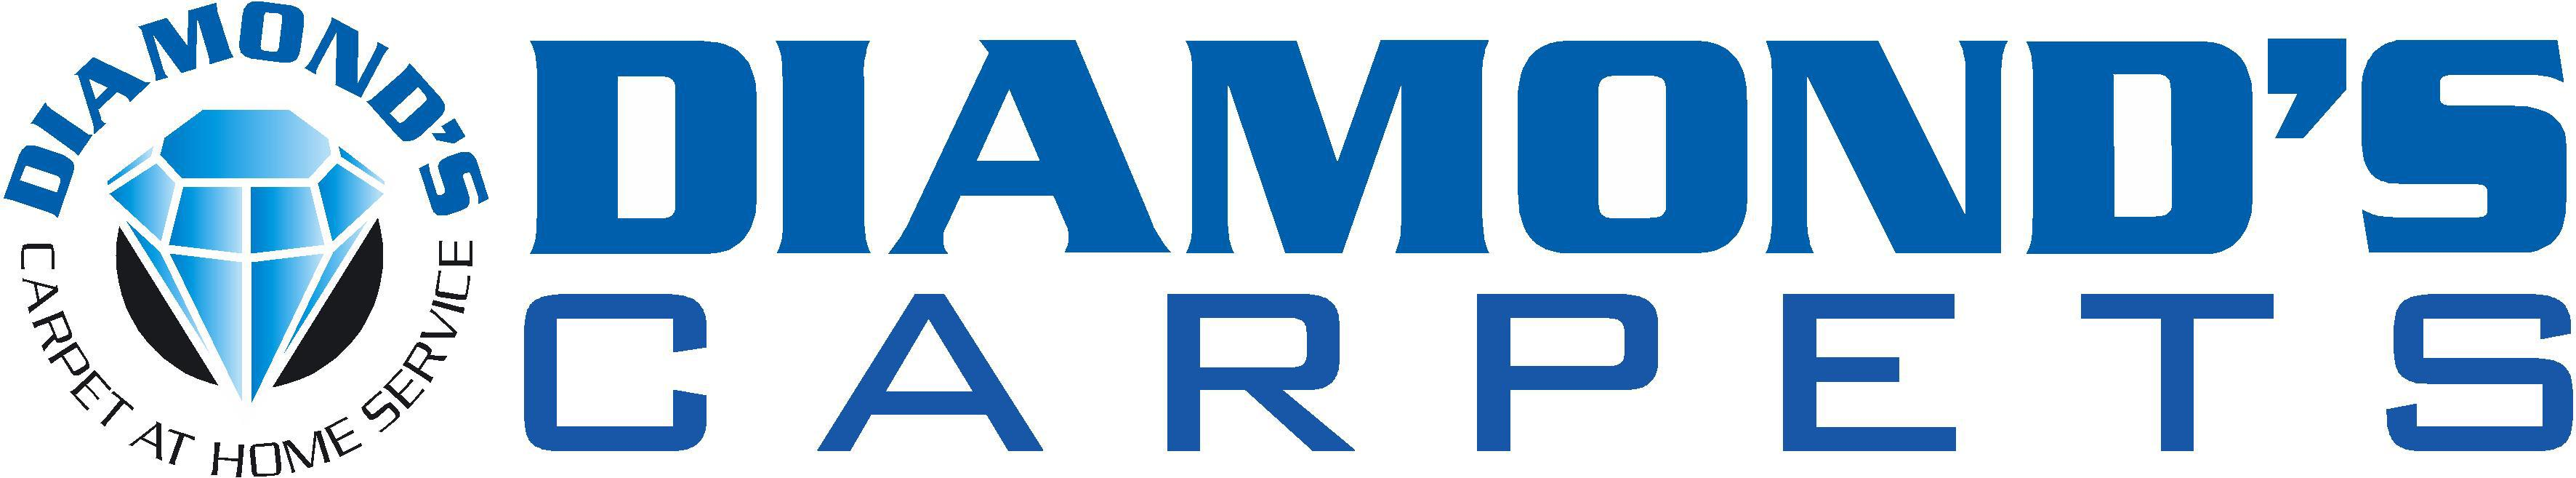 Diamond's carpets logo